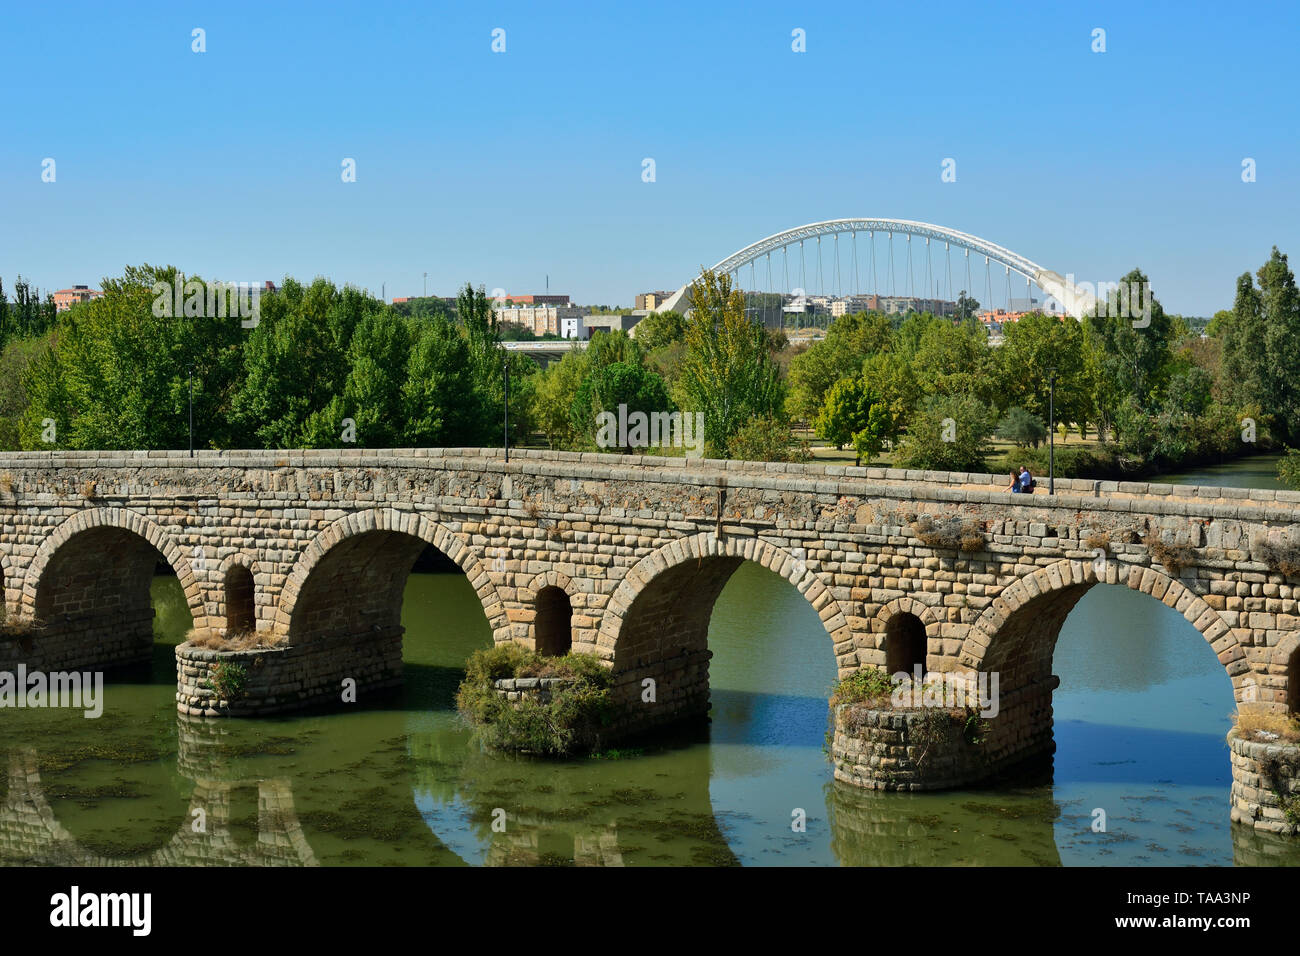 The Puente Romano (Roman Bridge) over the Guadiana river, dating back to the 1st century BC. It is the world's longest bridge from ancient times. A Un - Stock Image